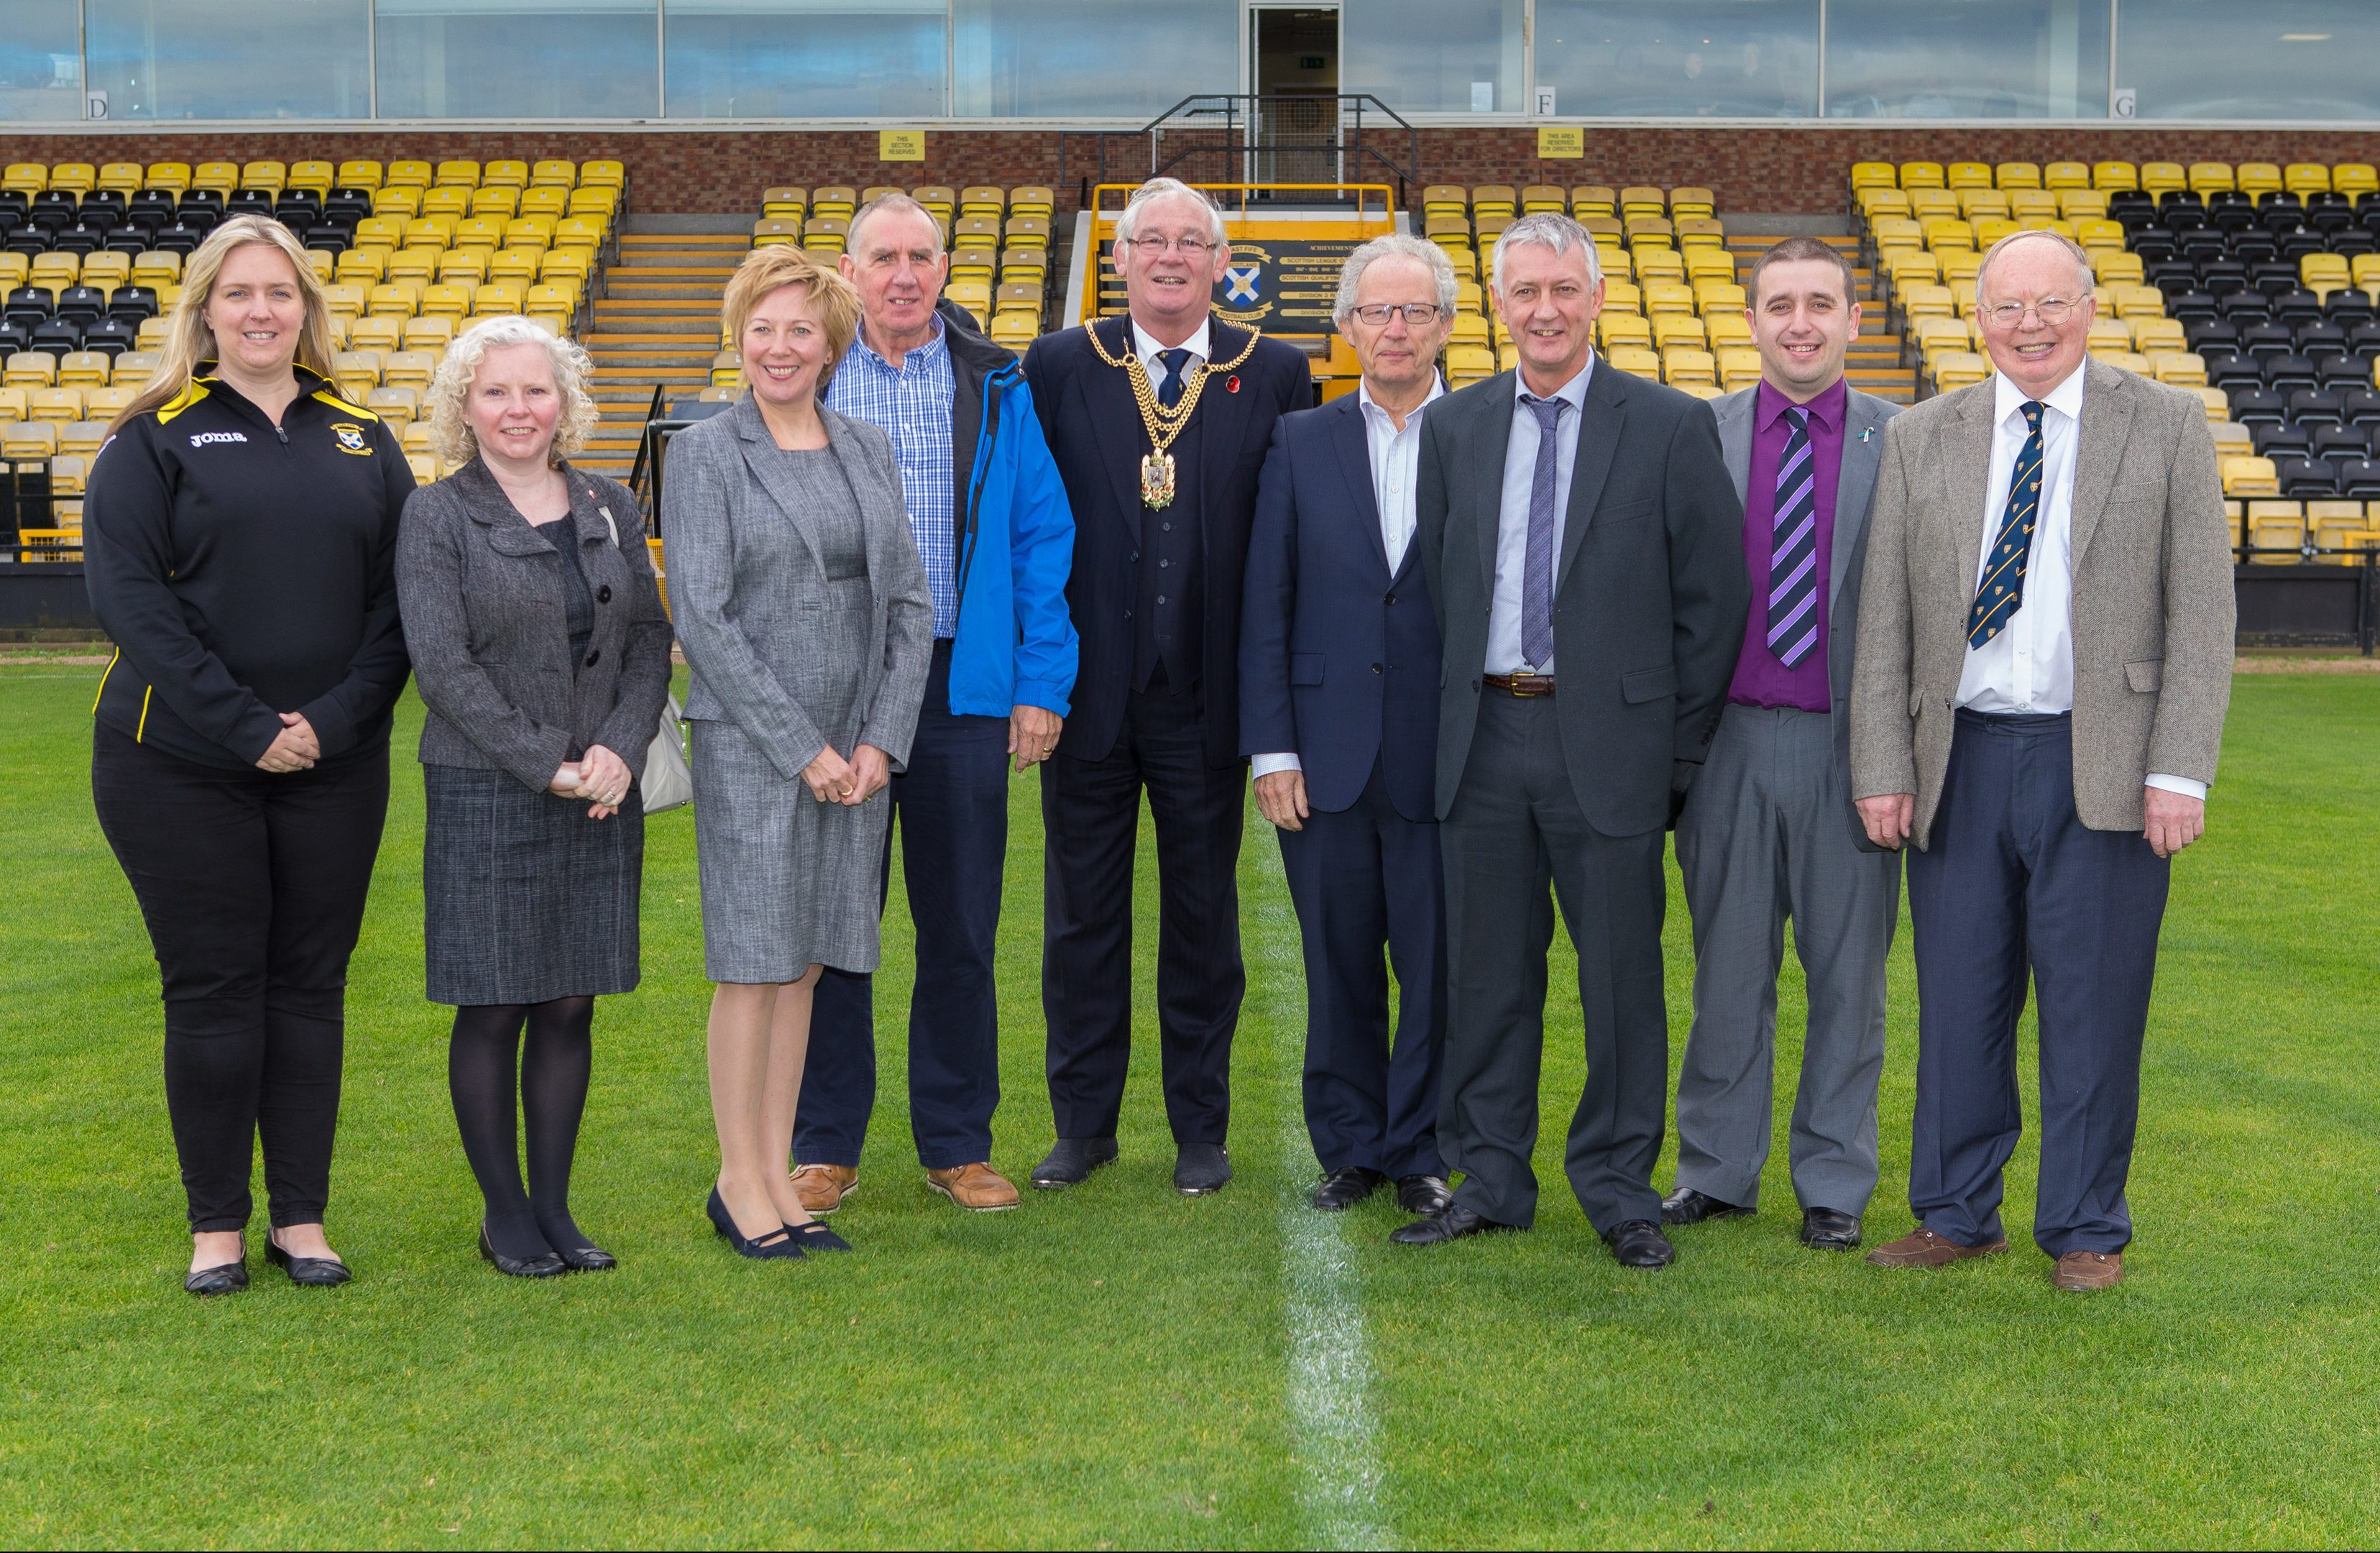 From left Lorna McCauley (Youth Academy), Councillor Claire Baker, Councillor Lesley Laird, Allan Duffy, Provost Jim Leishman, MSP Henry McLeish, Councillor David Graeme, Andrew Hutchison (FFTC) at Bayview Football Club where the turf will be replaced with astroturf material due to funding from Fife Council.